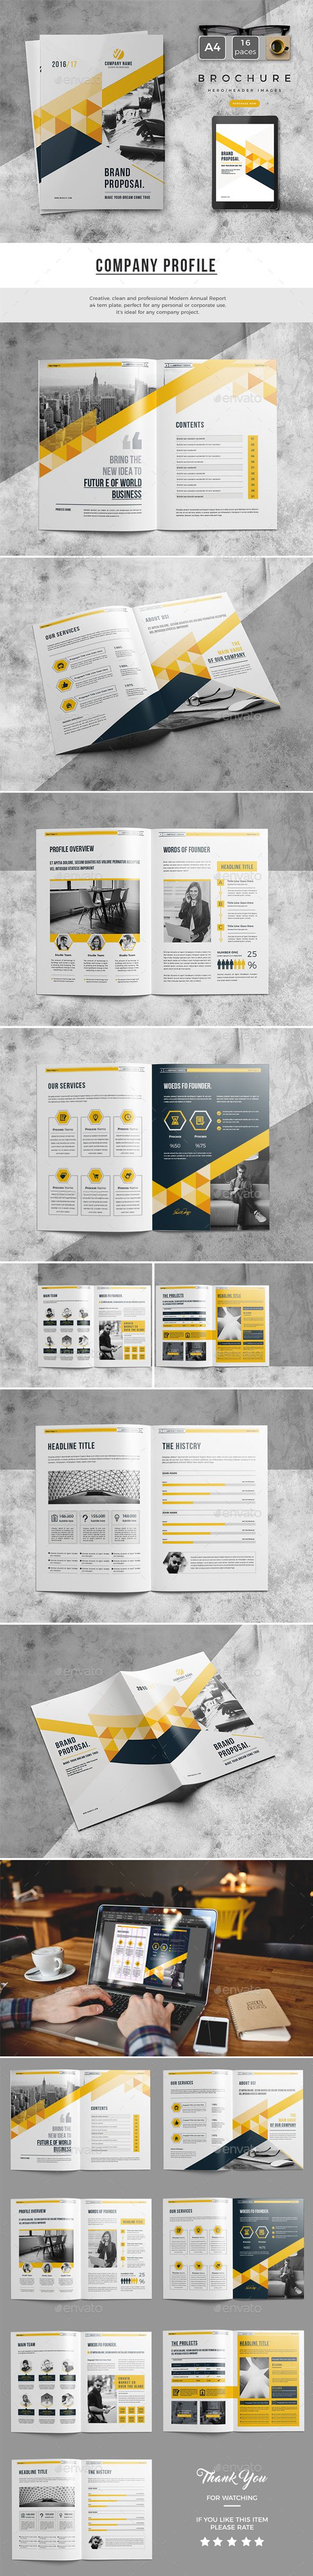 Corporate Business Proposal Template 2017 - #Corporate #Catalog #Business #Proposal #Brochure #Template #Design. Download here: https://graphicriver.net/item/proposal-2017/19521279?ref=yinkira